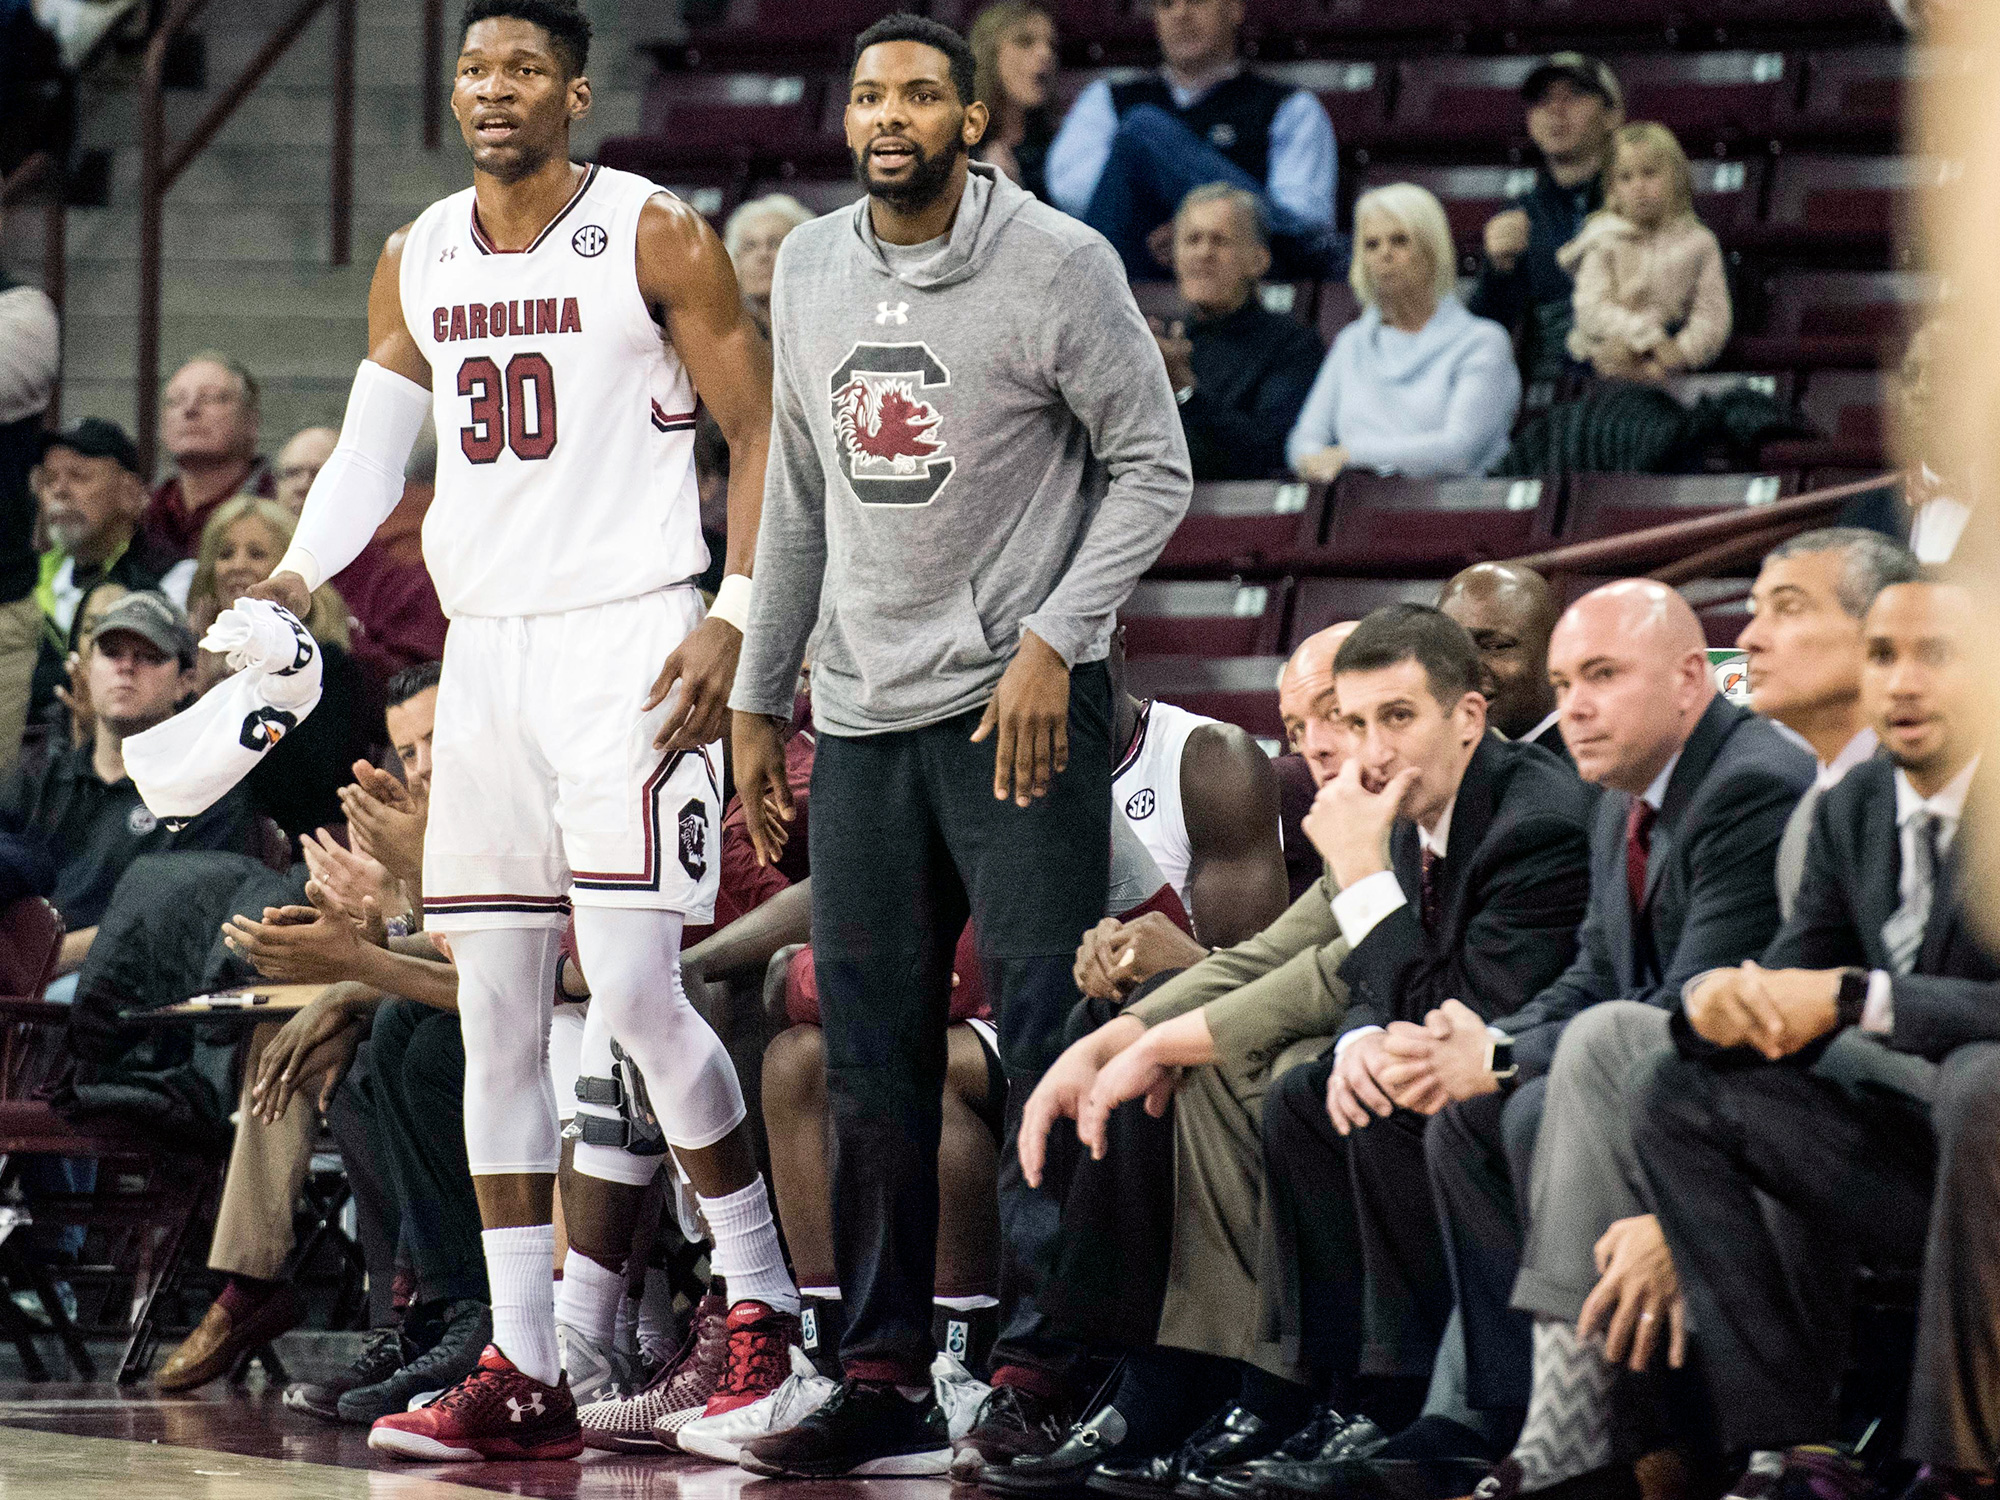 Sindarius Thornwell, South Carolina basketball